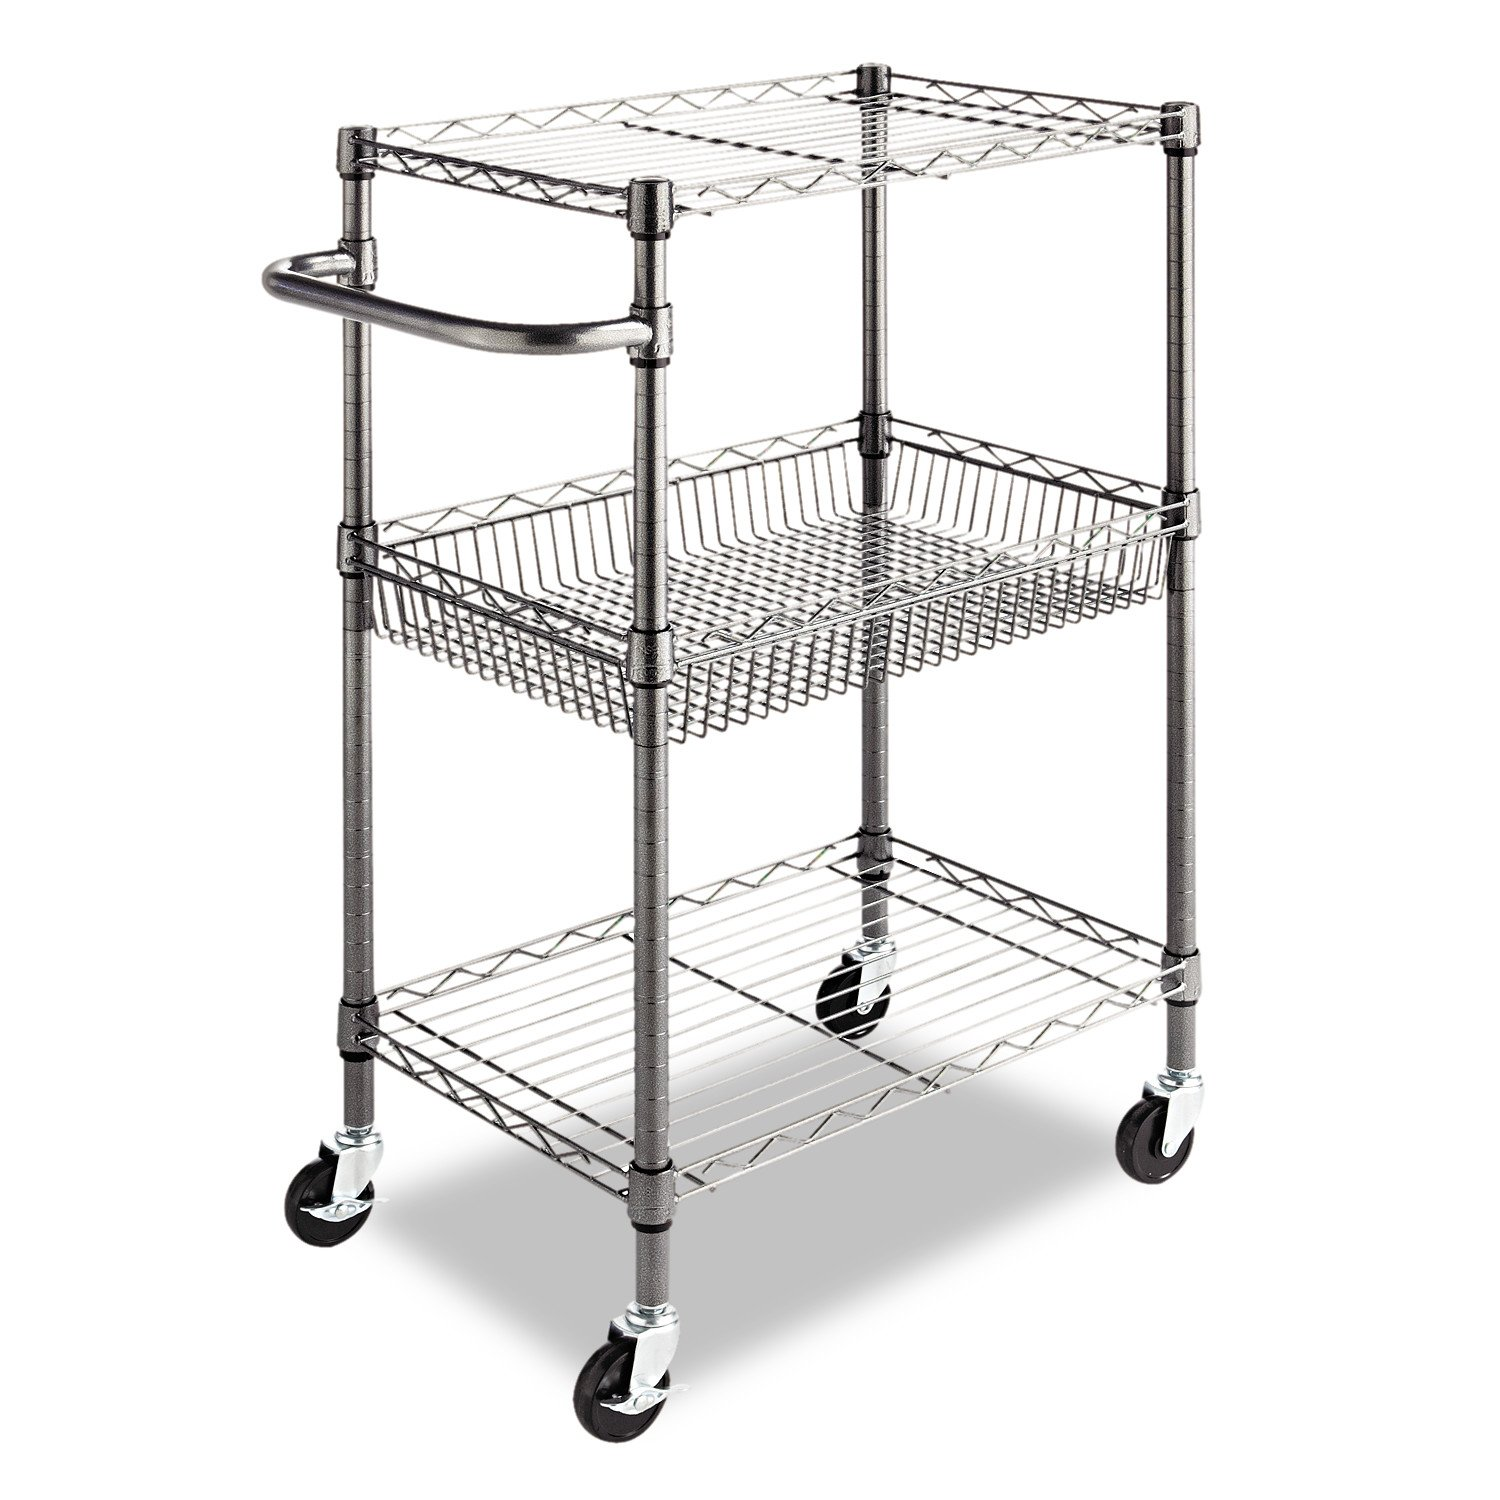 Alera 3-Tier Wire Rolling Cart, 3-Tier Wire Rolling Cart,28w x 16d x 39h, Black Anthracite